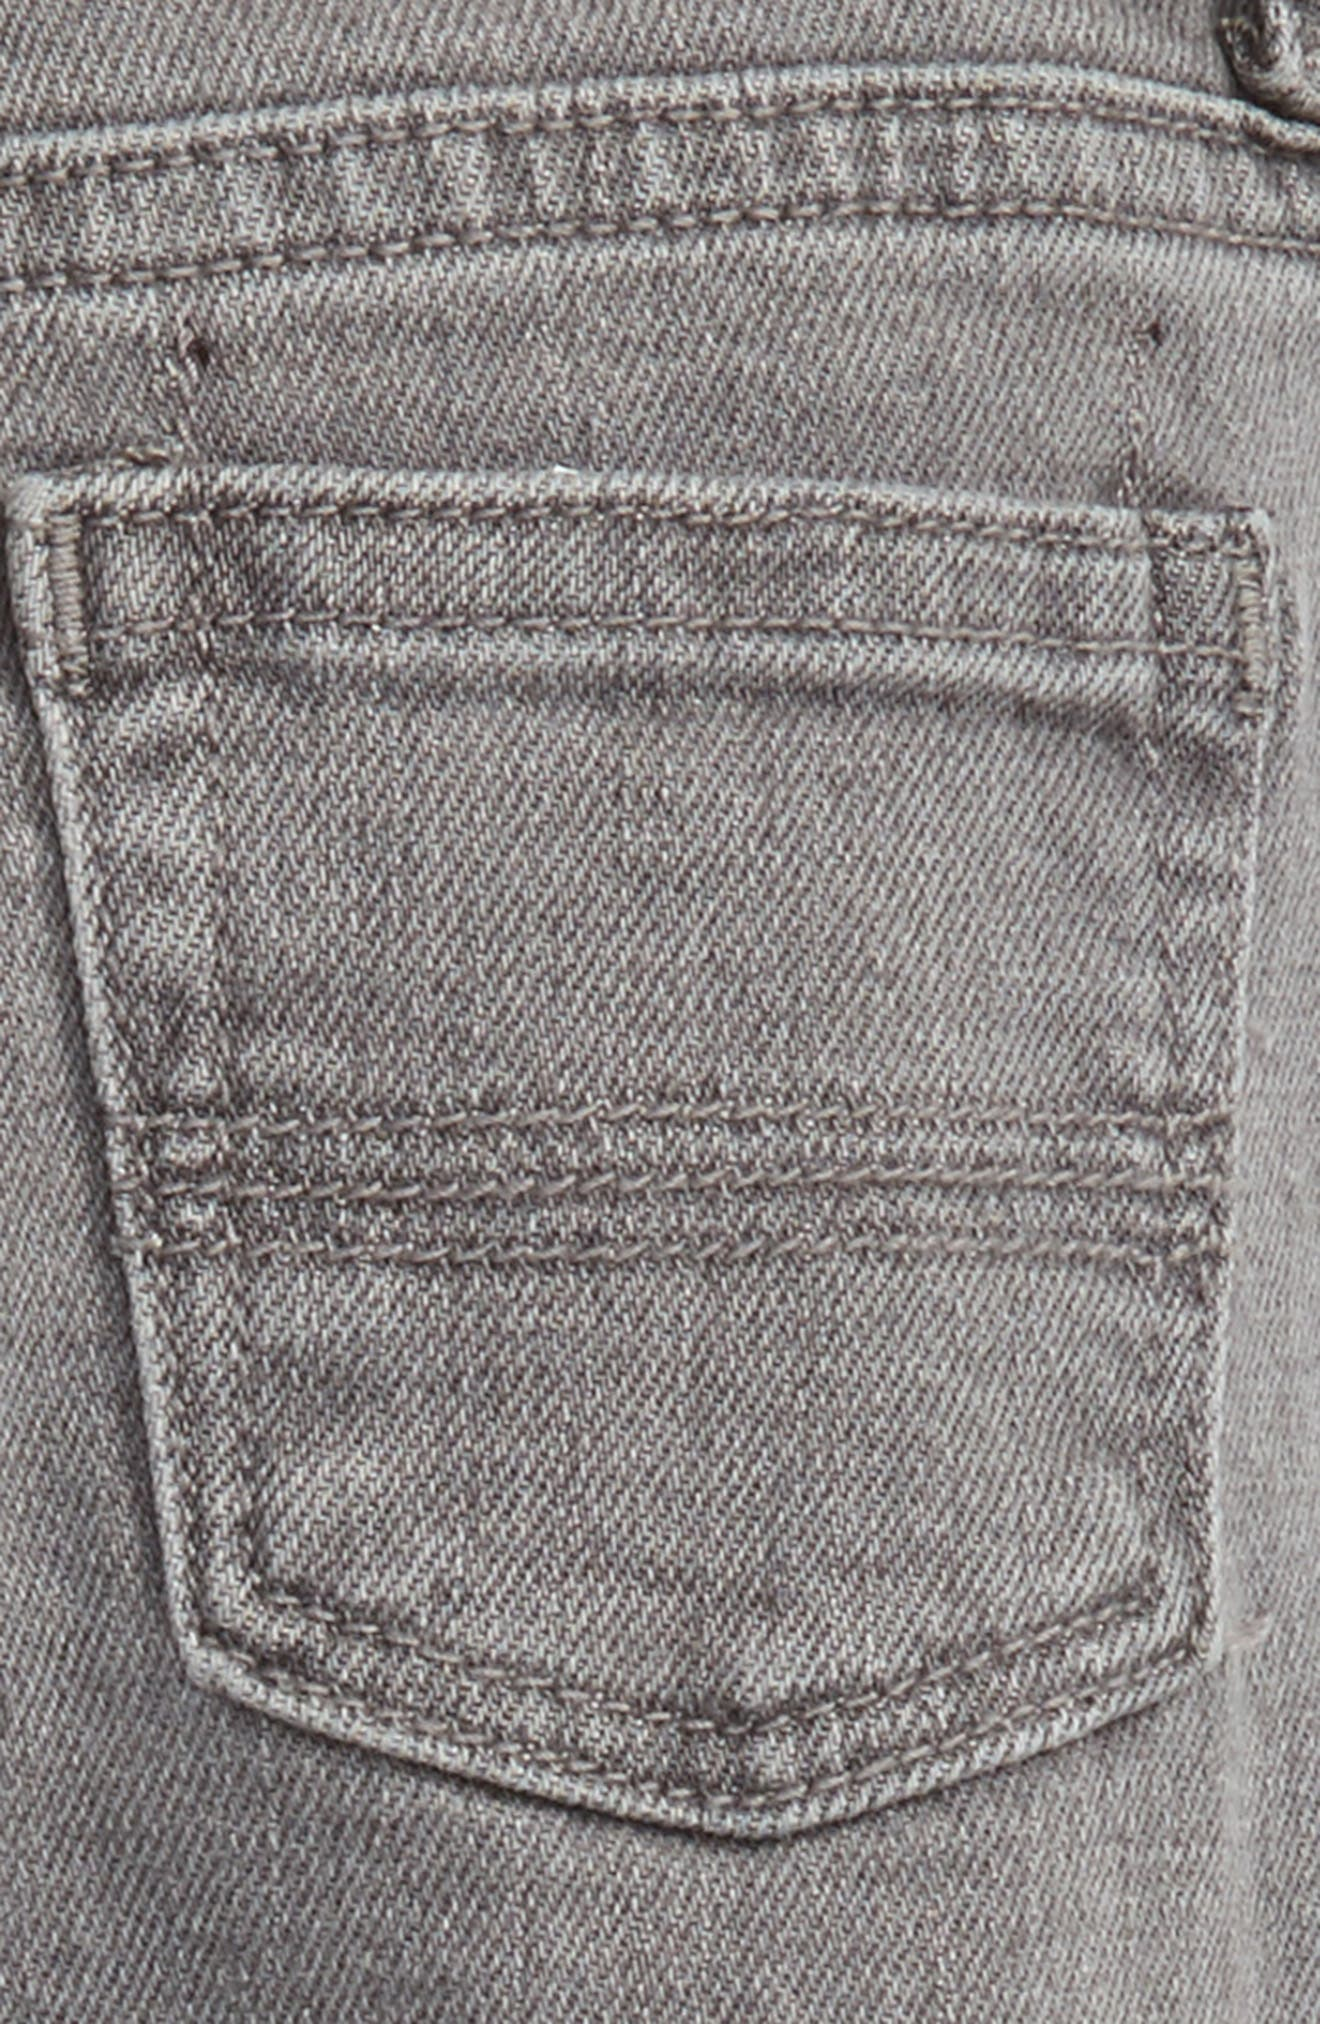 Slouch Jeans,                             Alternate thumbnail 2, color,                             020